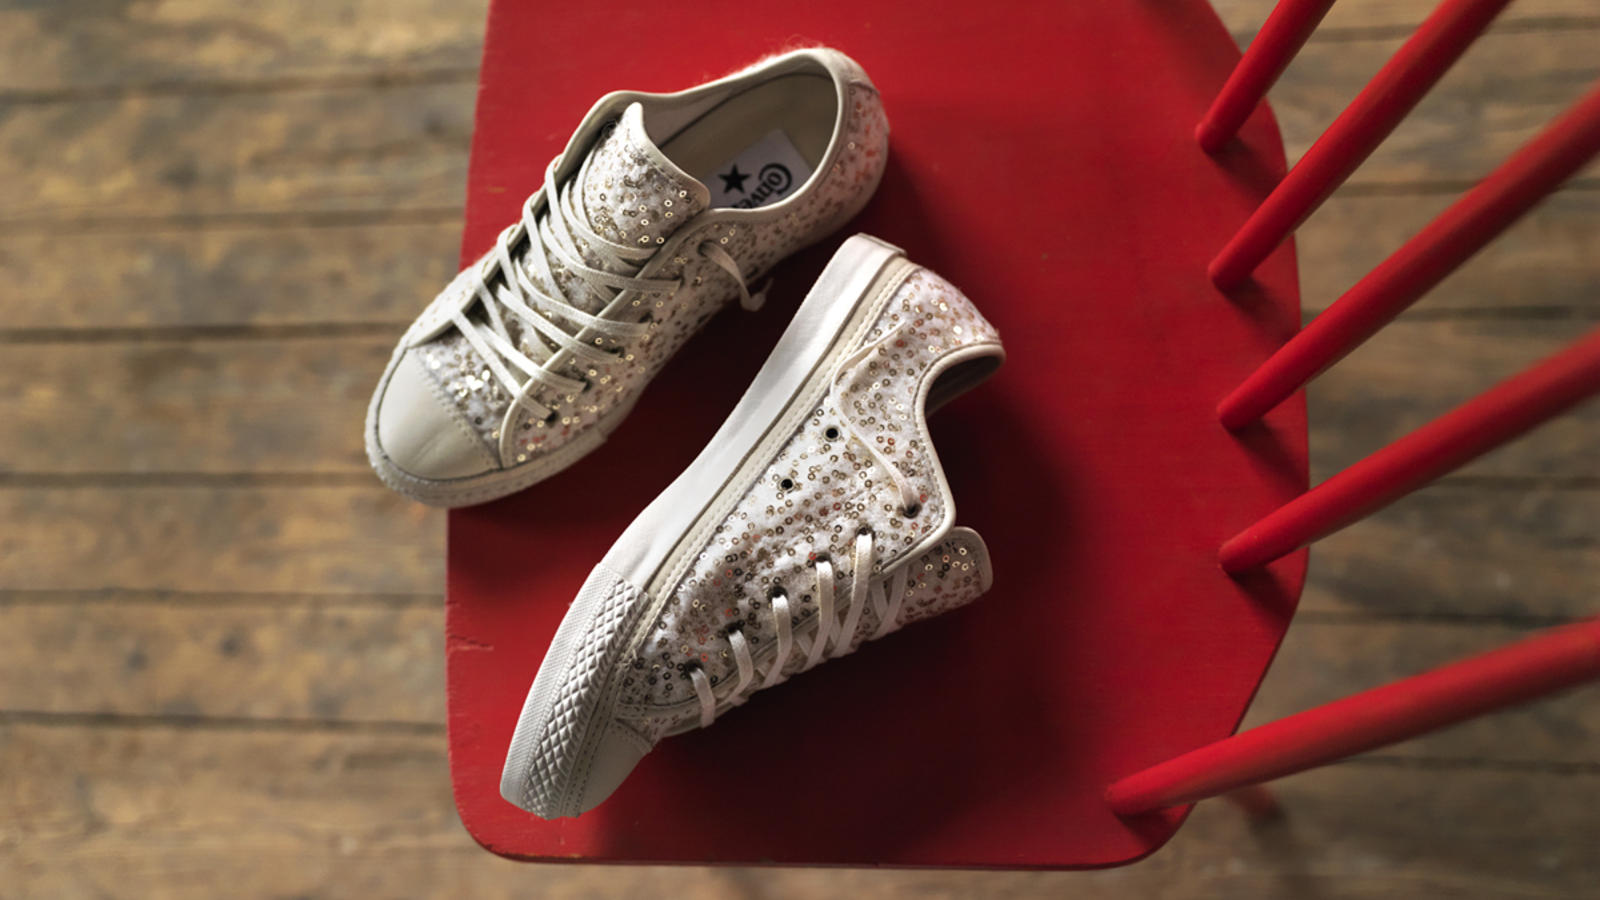 Converse Launches Holiday 2012 Premium Collections - Nike News 63d46573a6ed